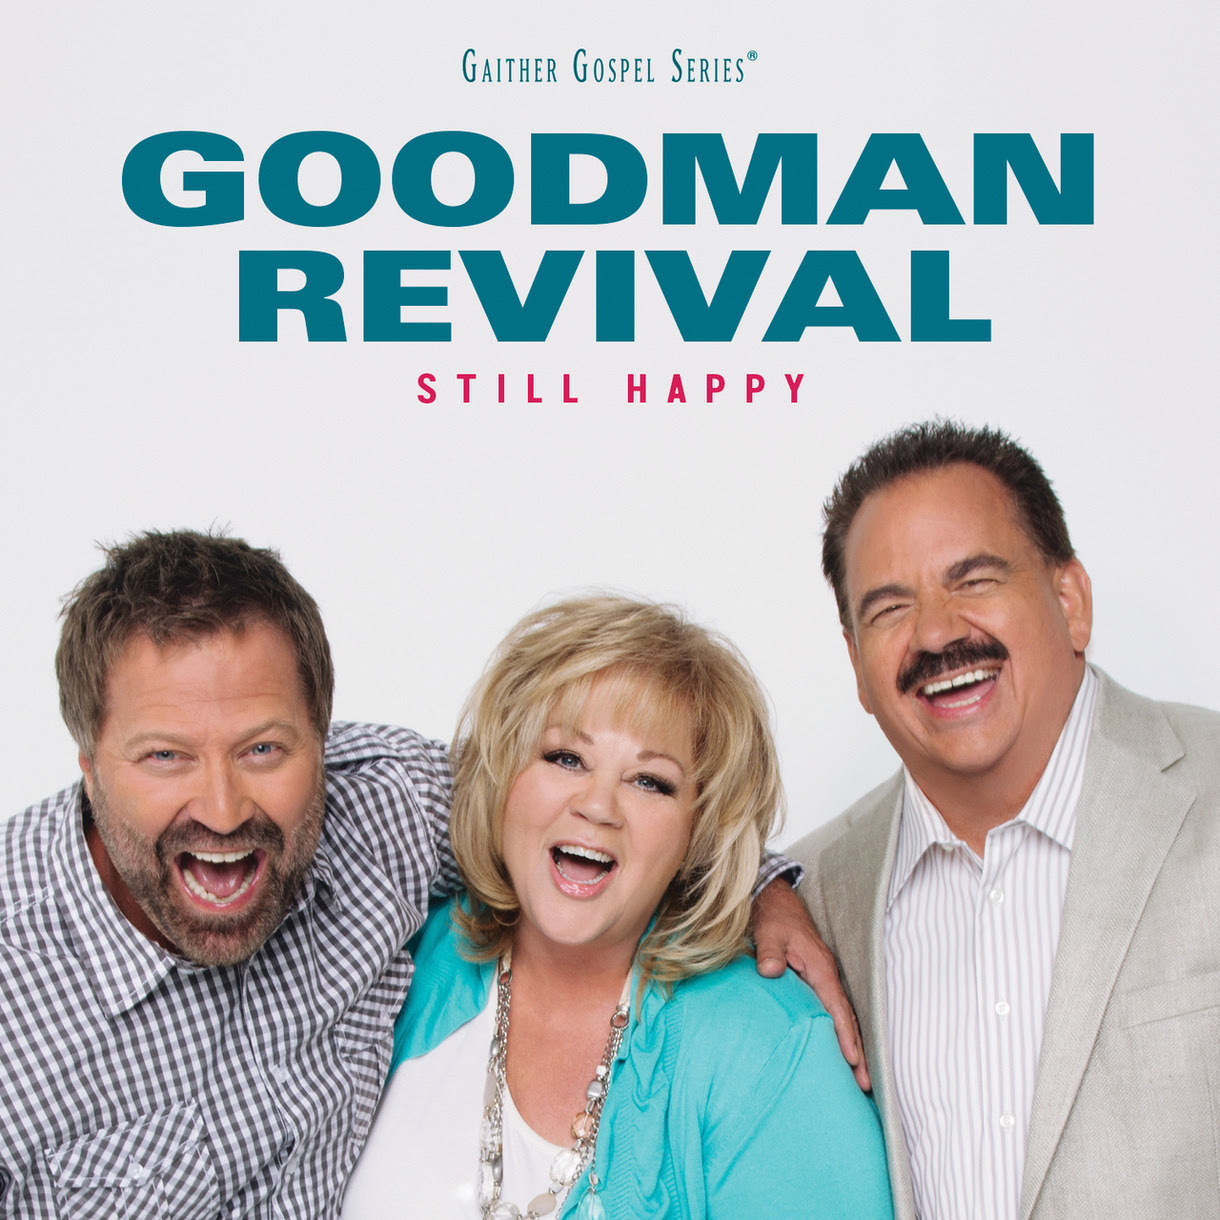 Goodman Revival: STILL HAPPY As They Release Sophomore Recording